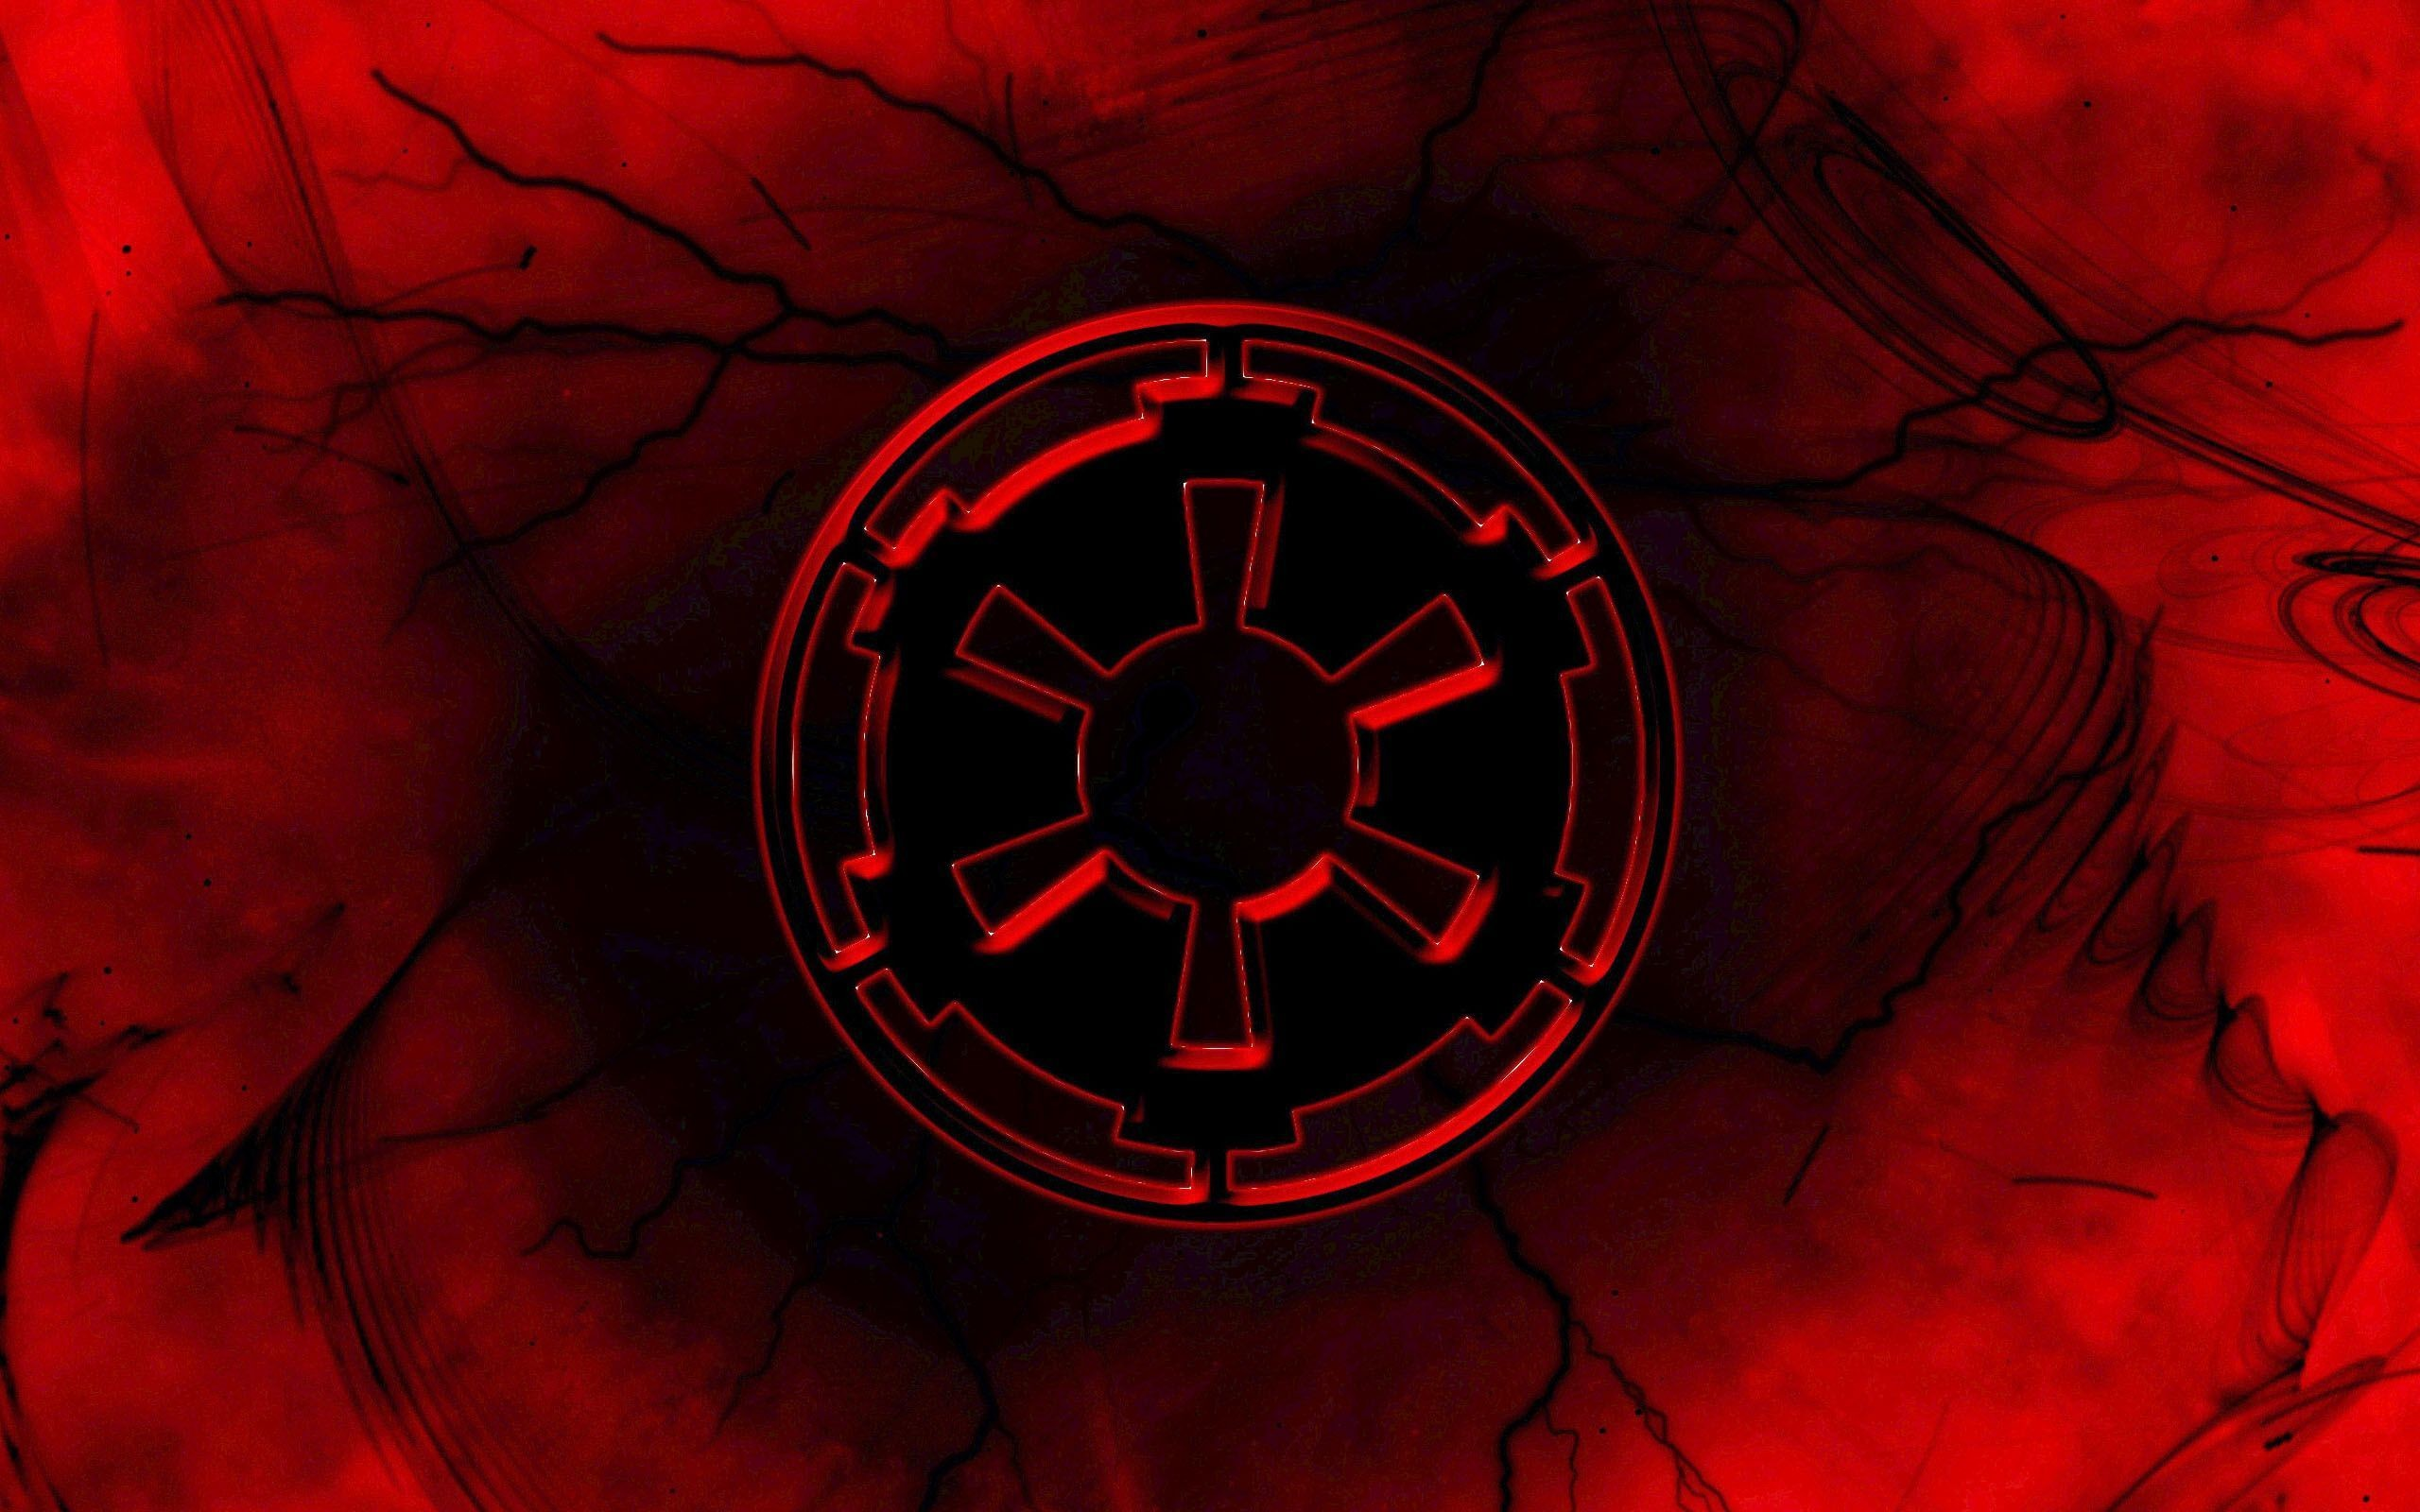 Res: 2560x1600, Star Wars Sith Wallpapers - Wallpaper Cave